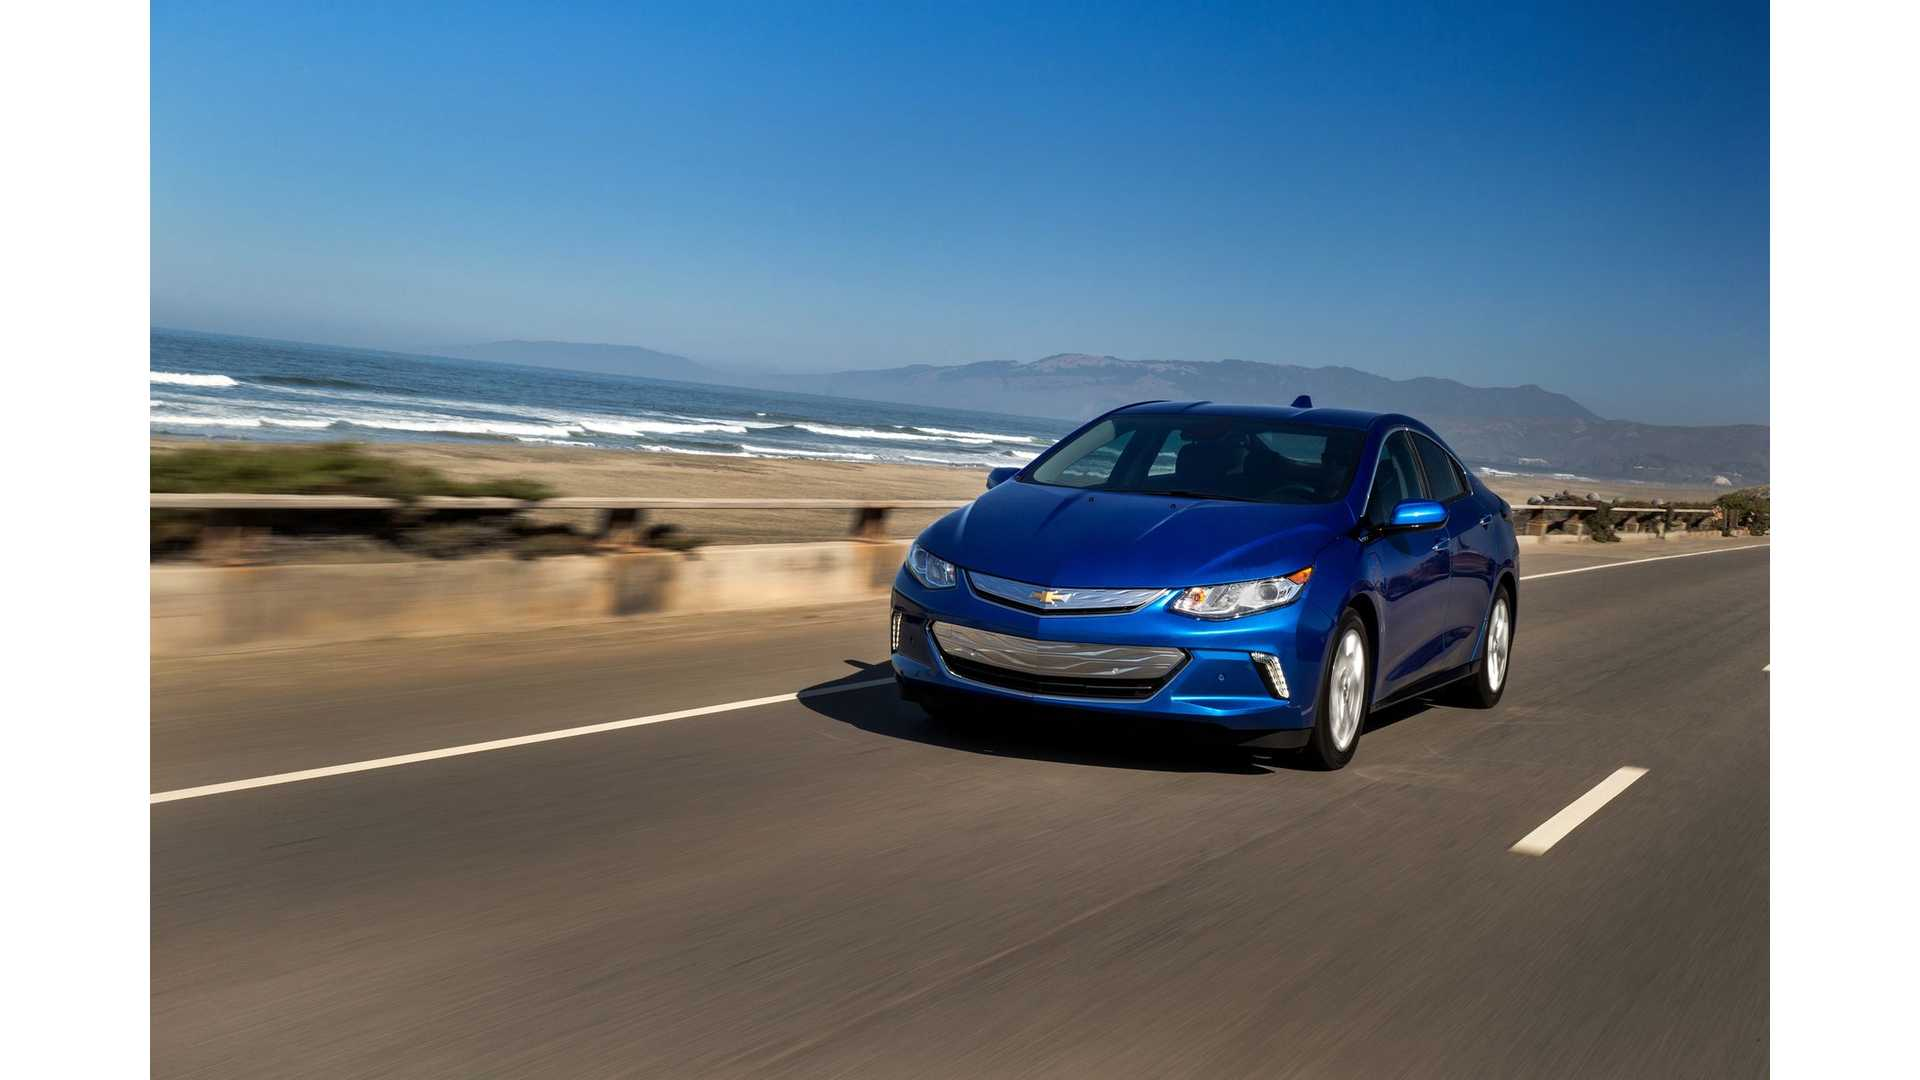 Chevy Volt Lease Cost >> Lease A Chevrolet Volt For Less Per Month Than A Toyota Prius